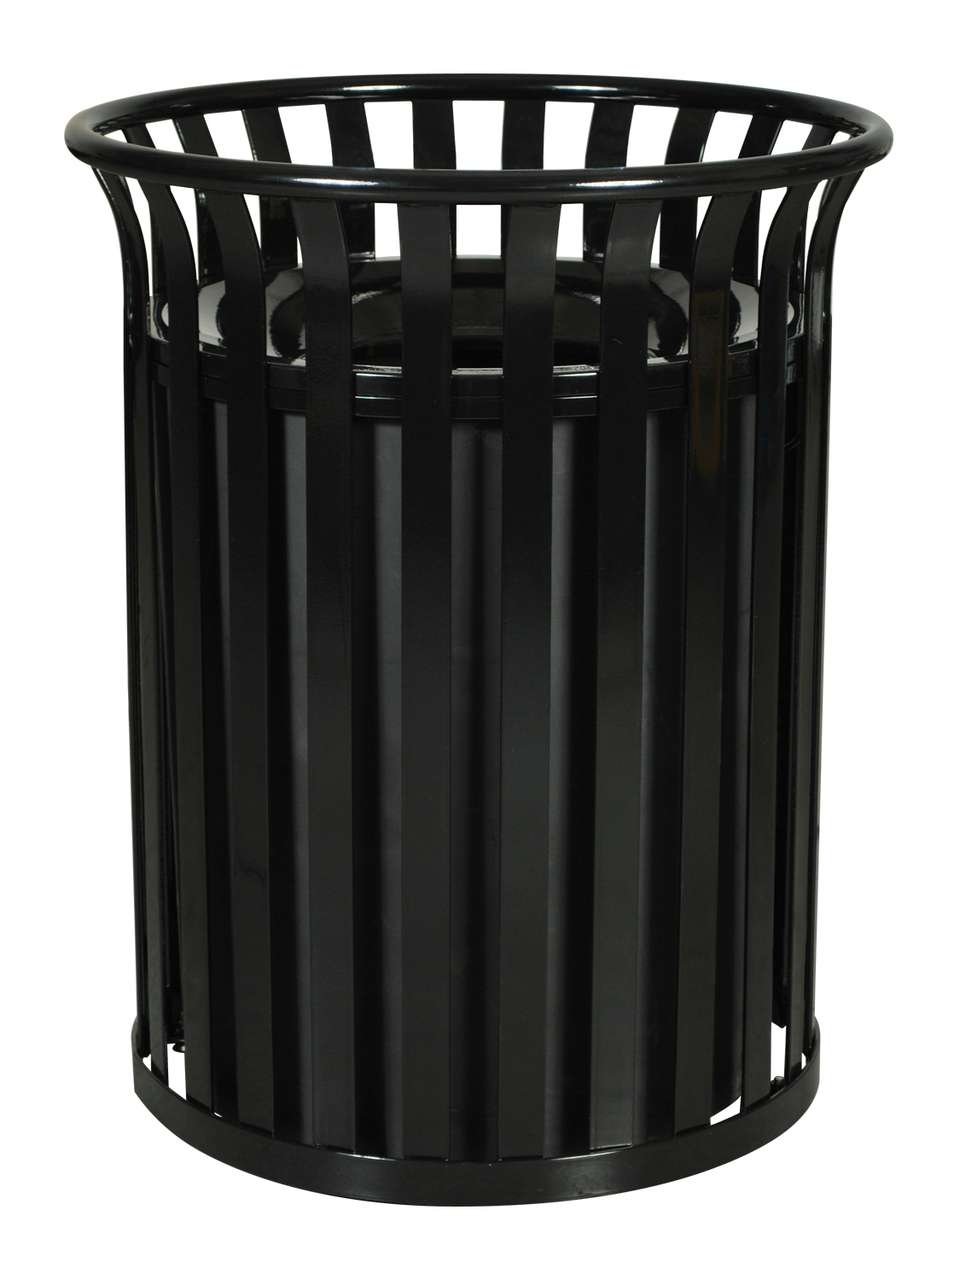 More Garbage Bins for Major Towns